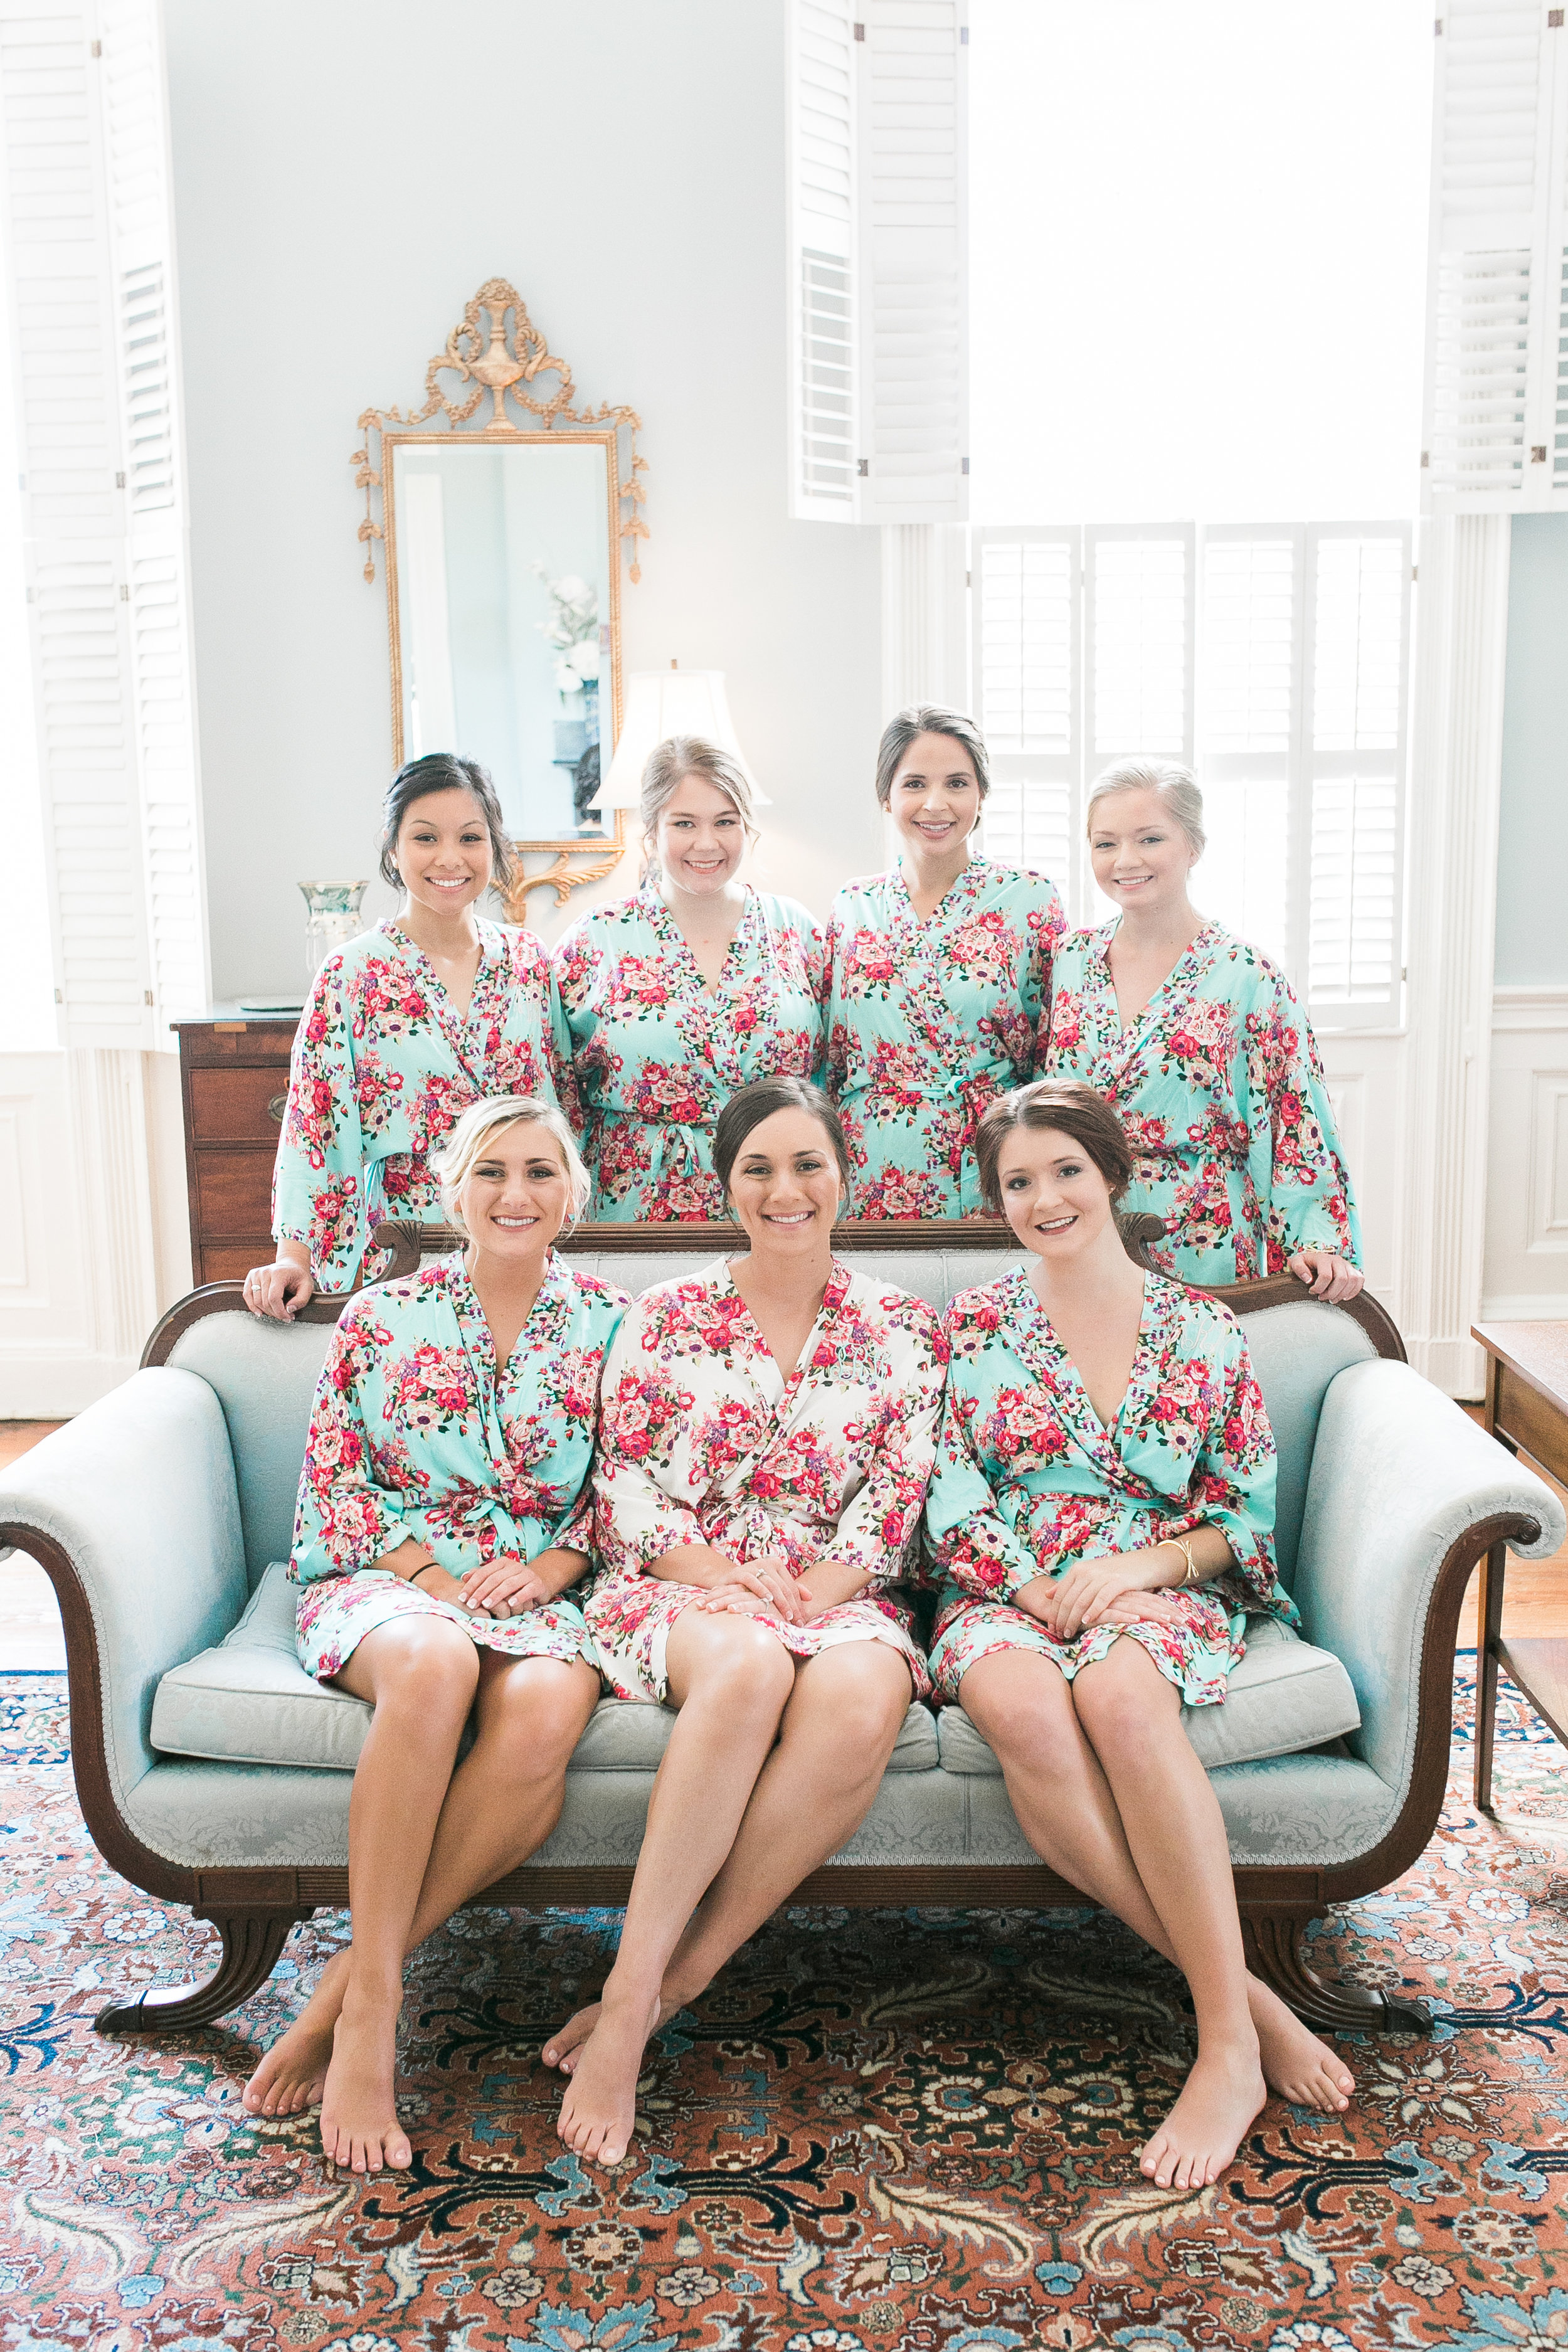 Bride with her bridesmaids in matching robes for a wedding at The Thomas Bennett House  //  A Lowcountry Wedding Magazine & Blog